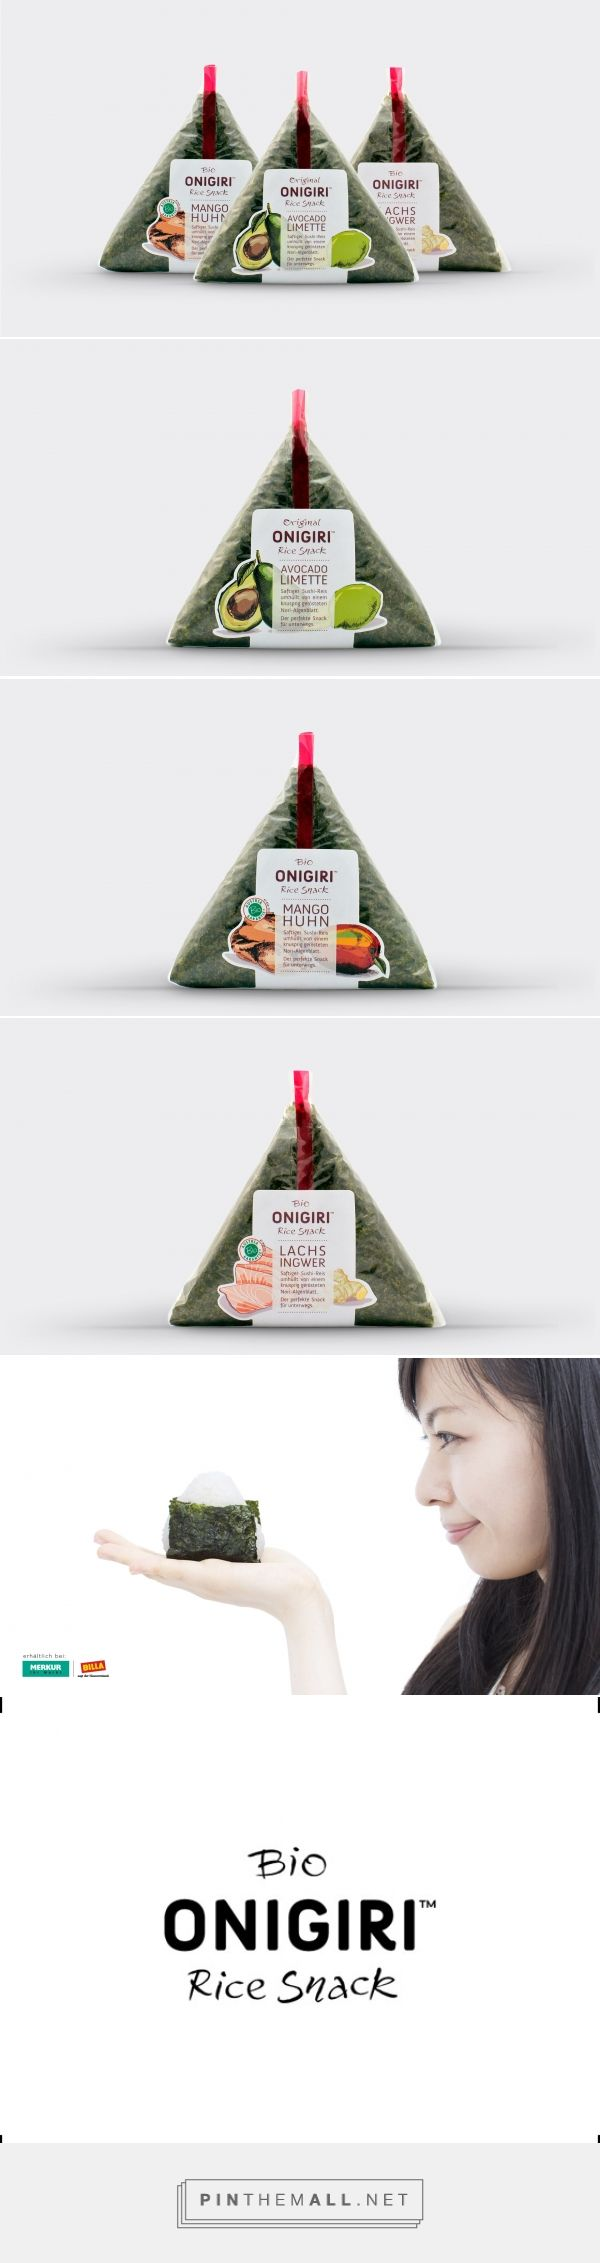 Onigiri - Alphakanal the clever packaging might entice me to eat this rice snack curated by Packaging Diva PD